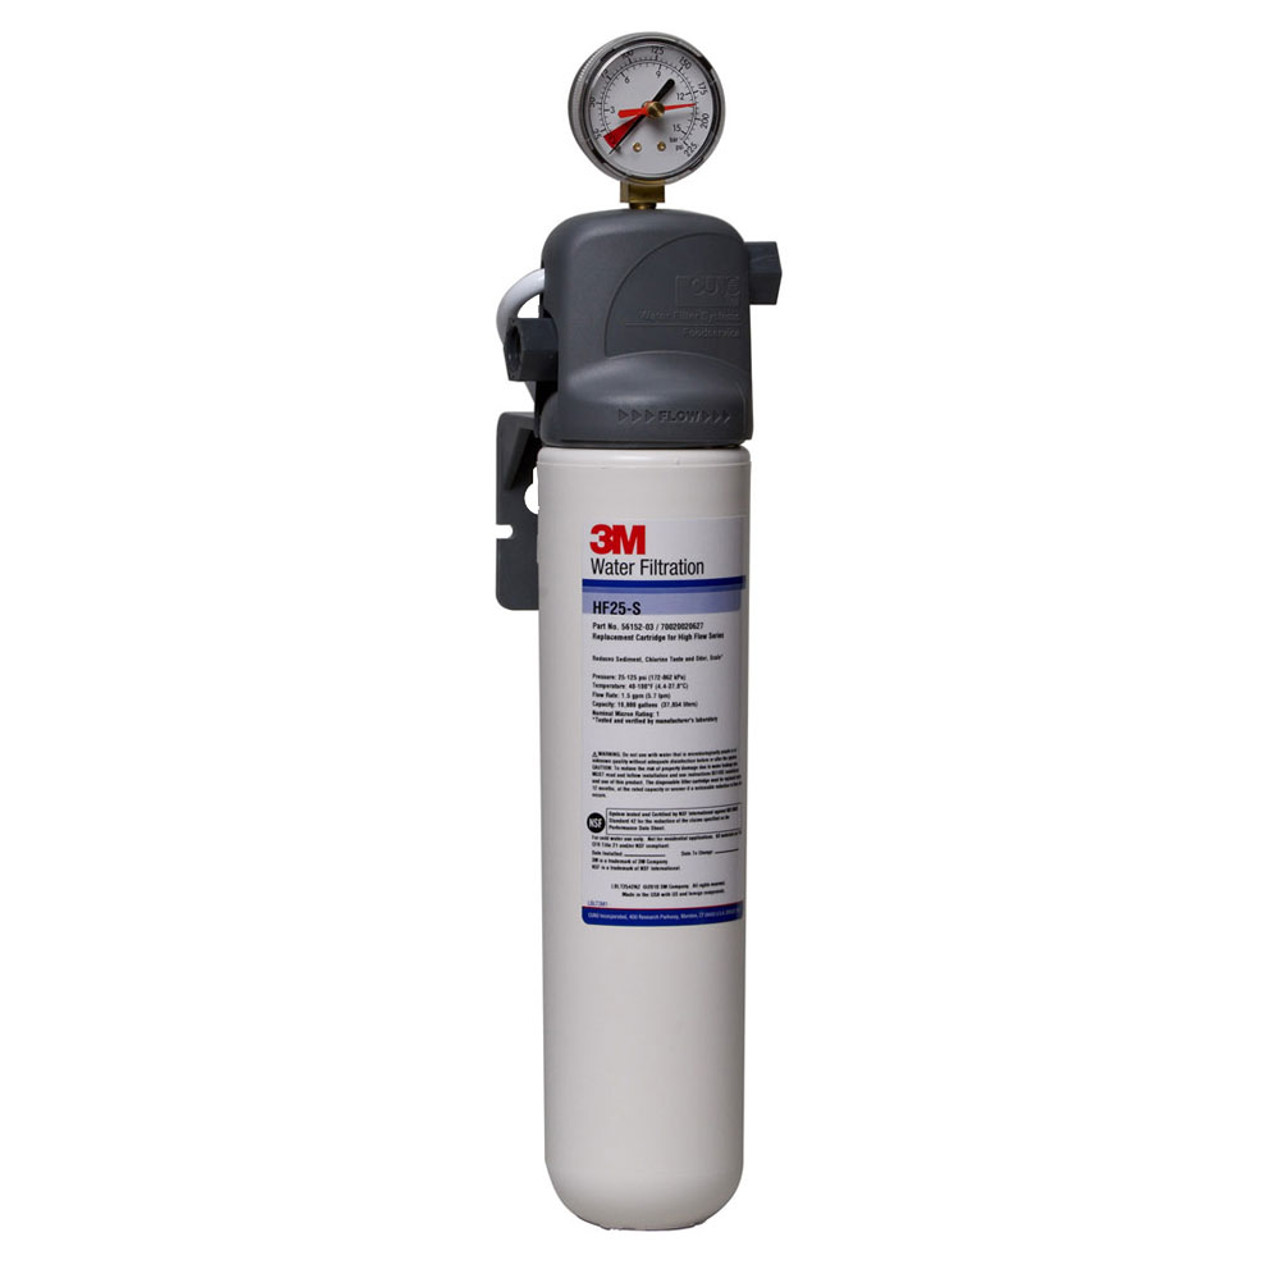 3M ICE125-S Ice Filtration System 56160-04